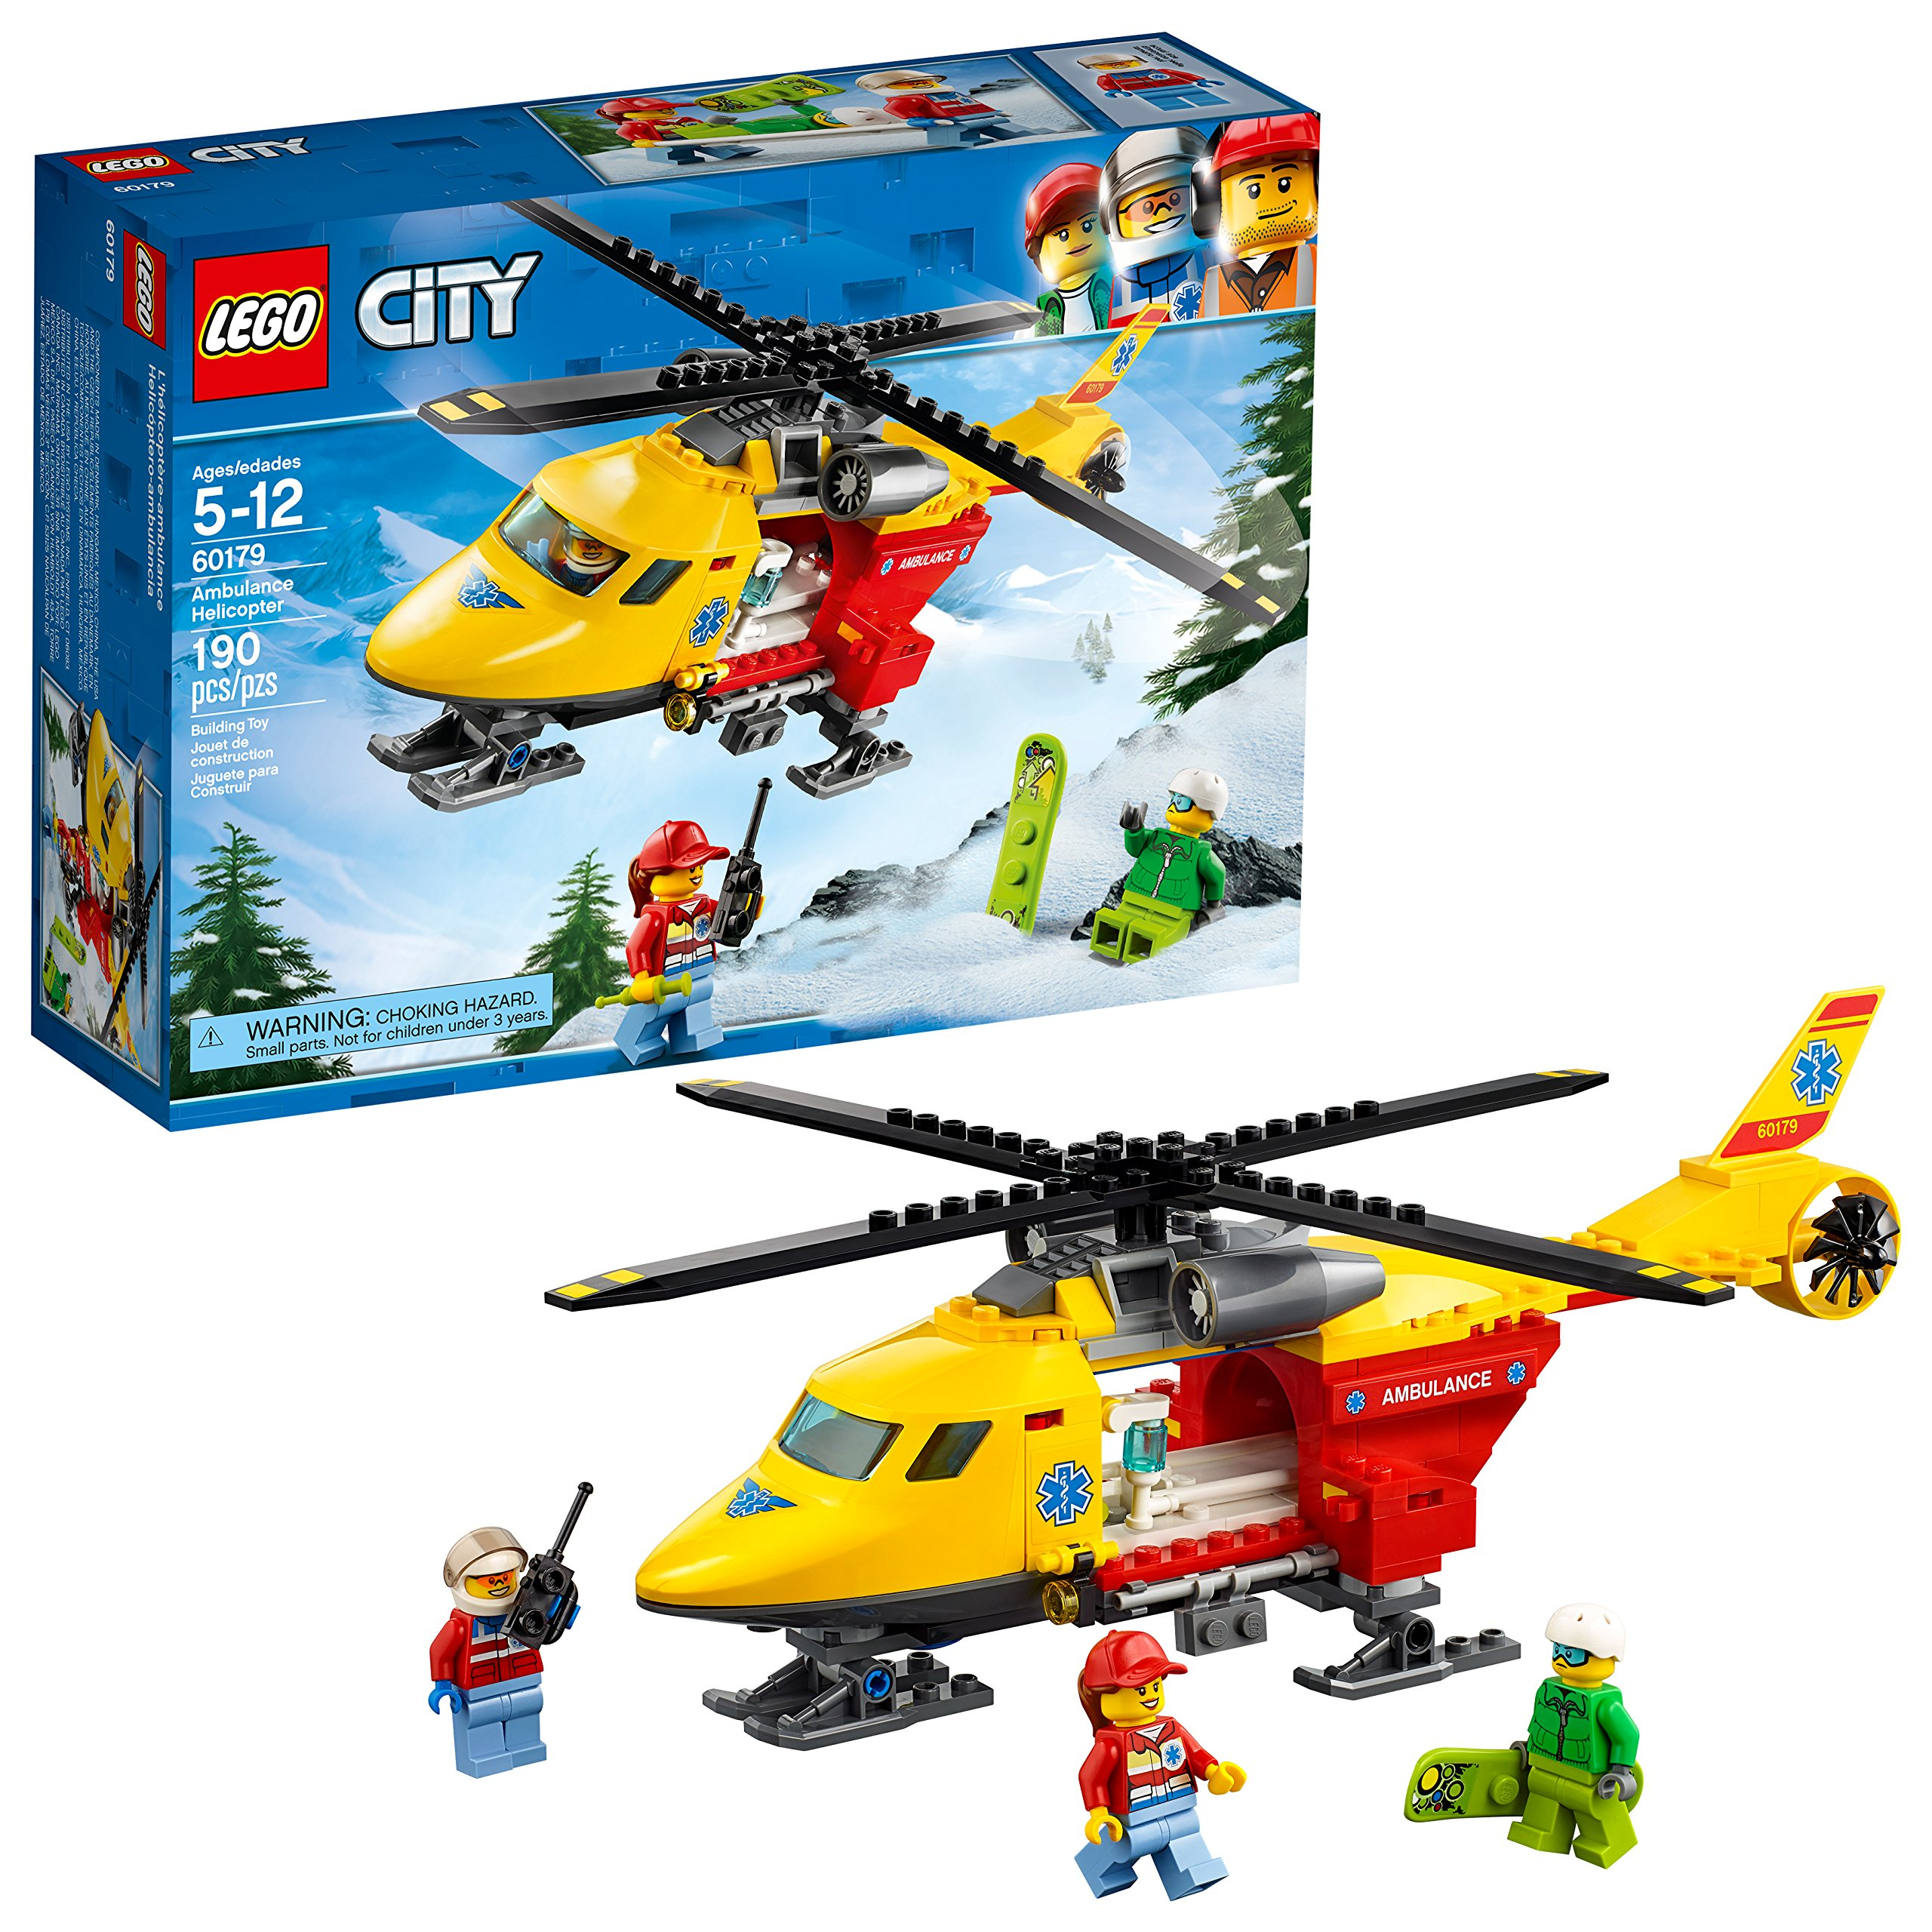 LEGO City Ambulance Helicopter 60179 Building Kit (190 Piece) by LEGO